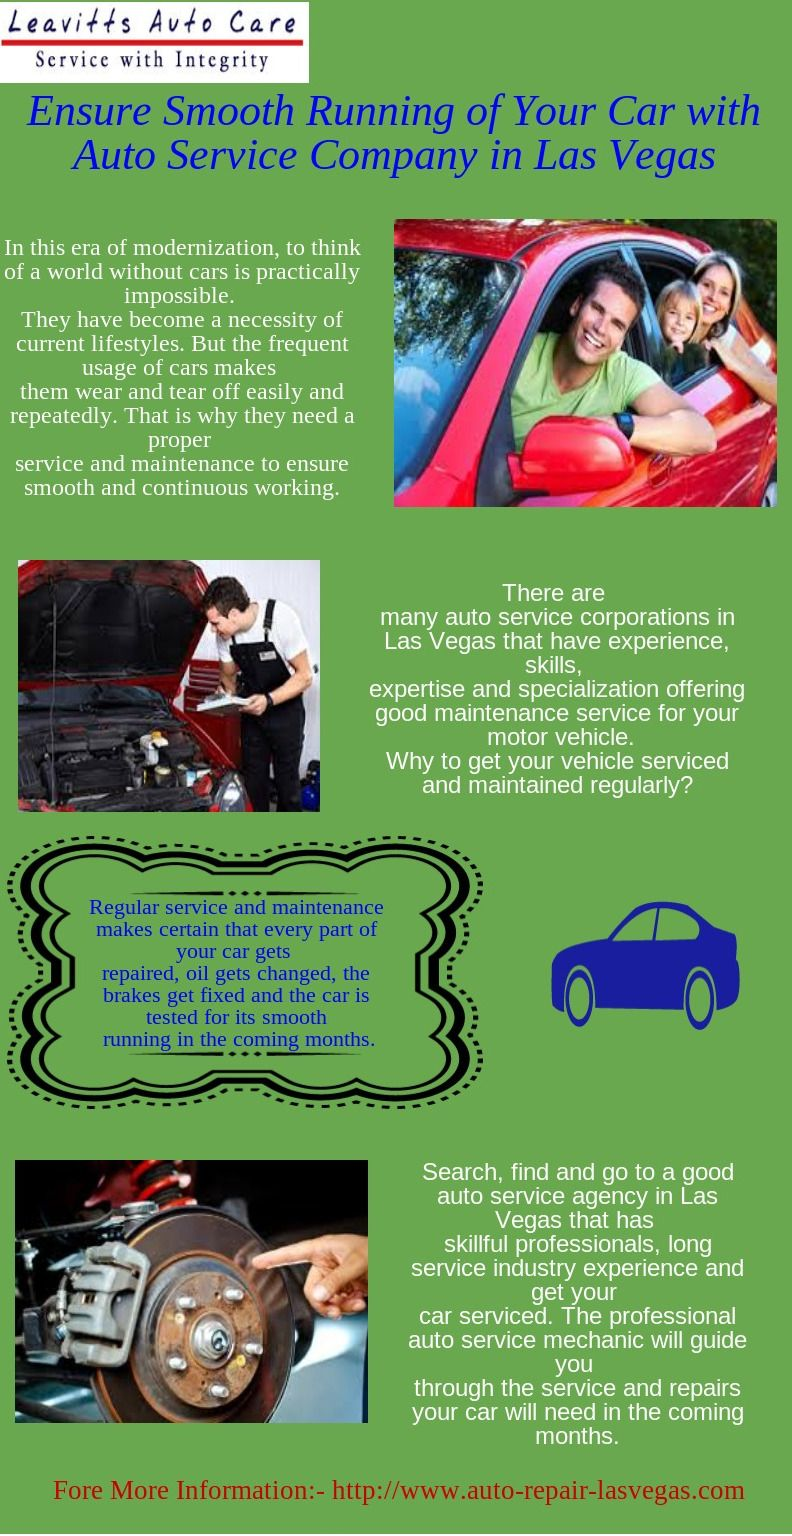 There are many auto service corporations in Las Vegas that